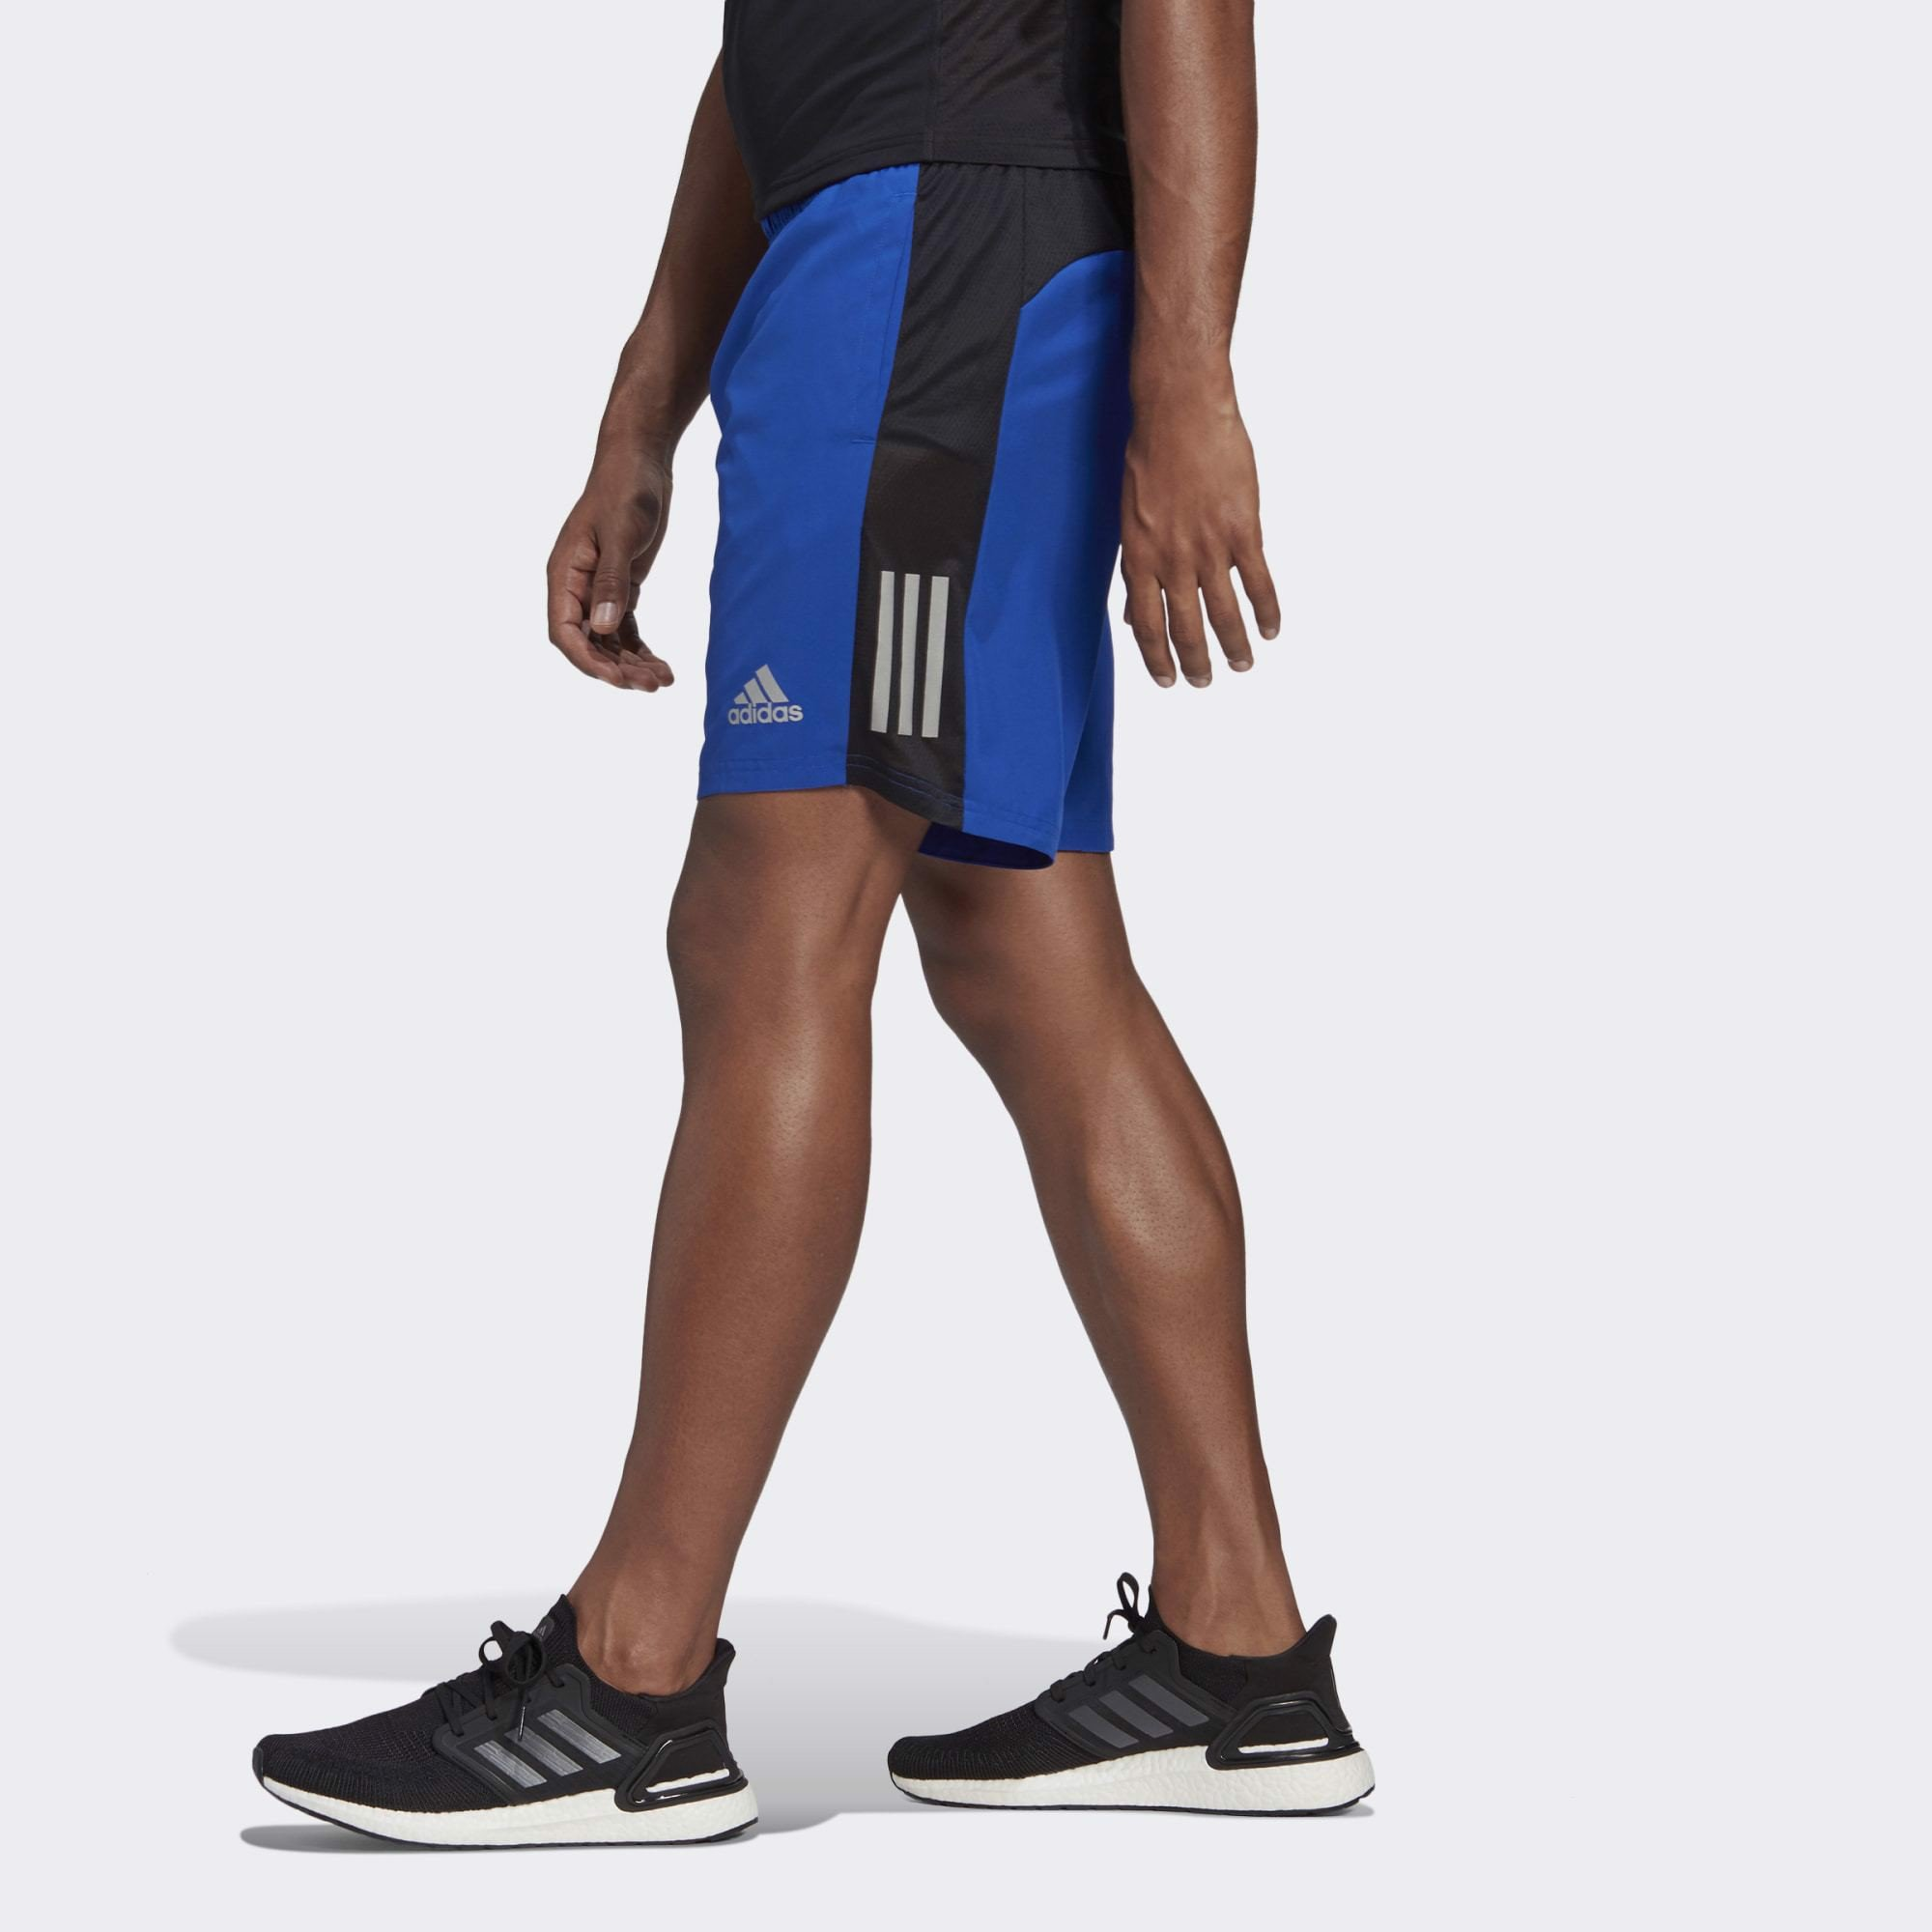 Quần Đùi Chạy Nam Adidas Own The Run Sho FT1447